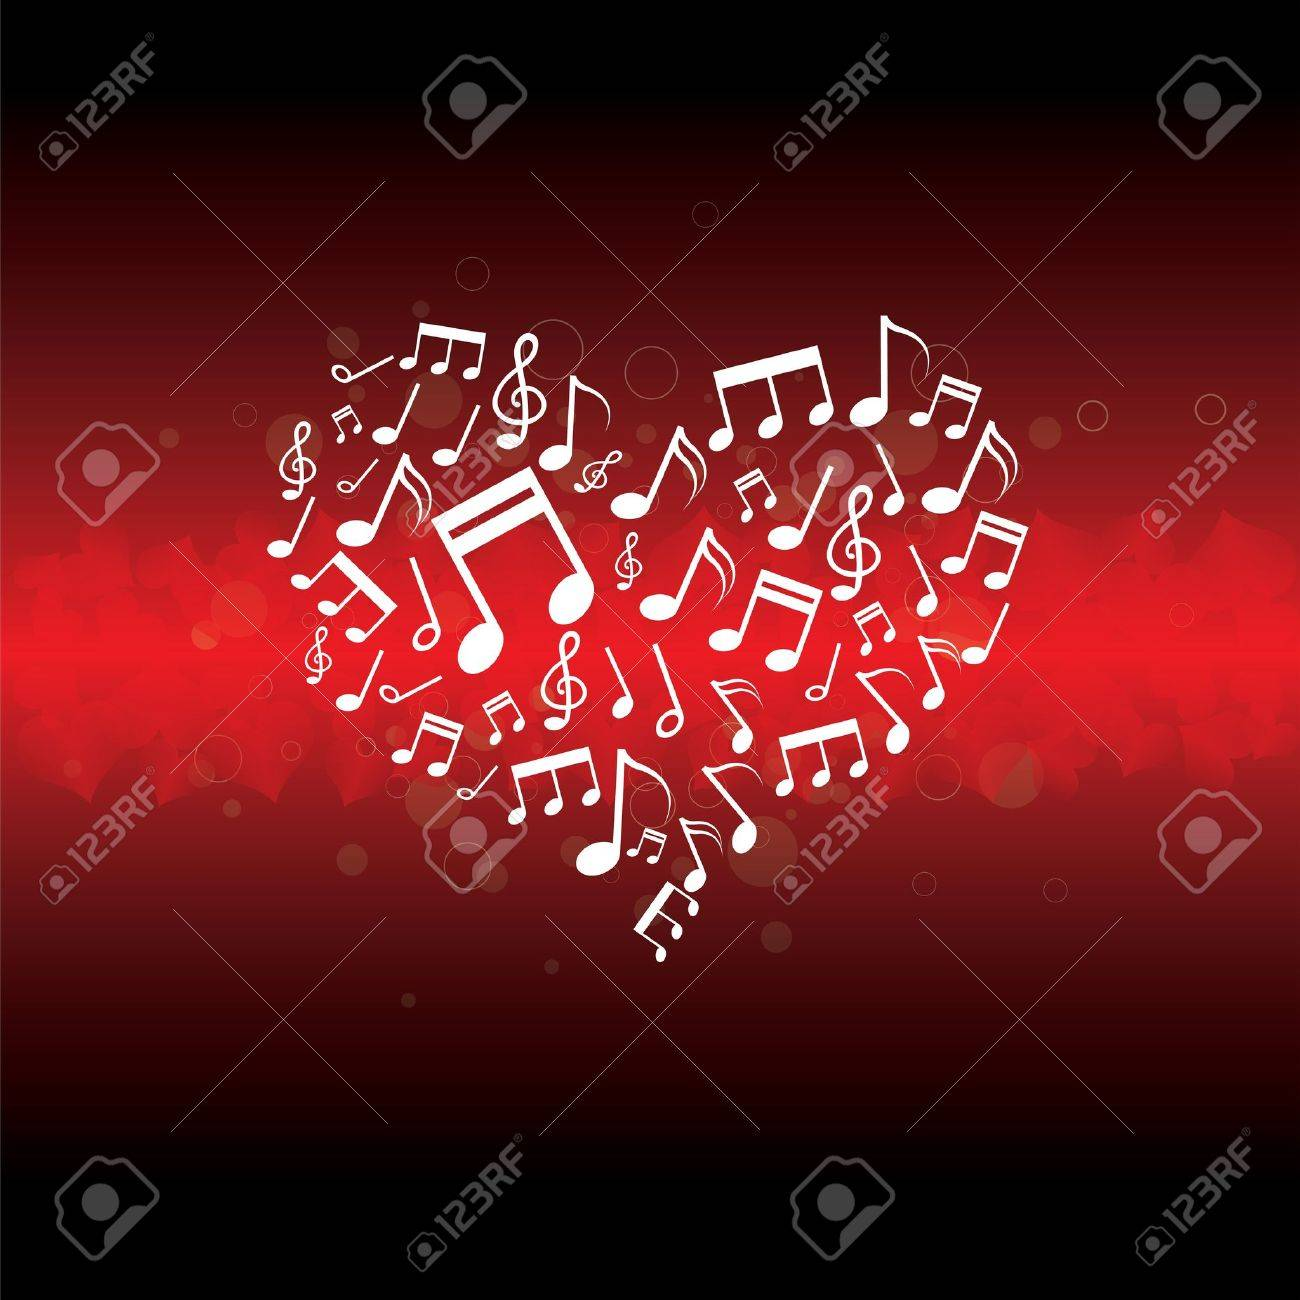 music in heart background Stock Vector - 13177223